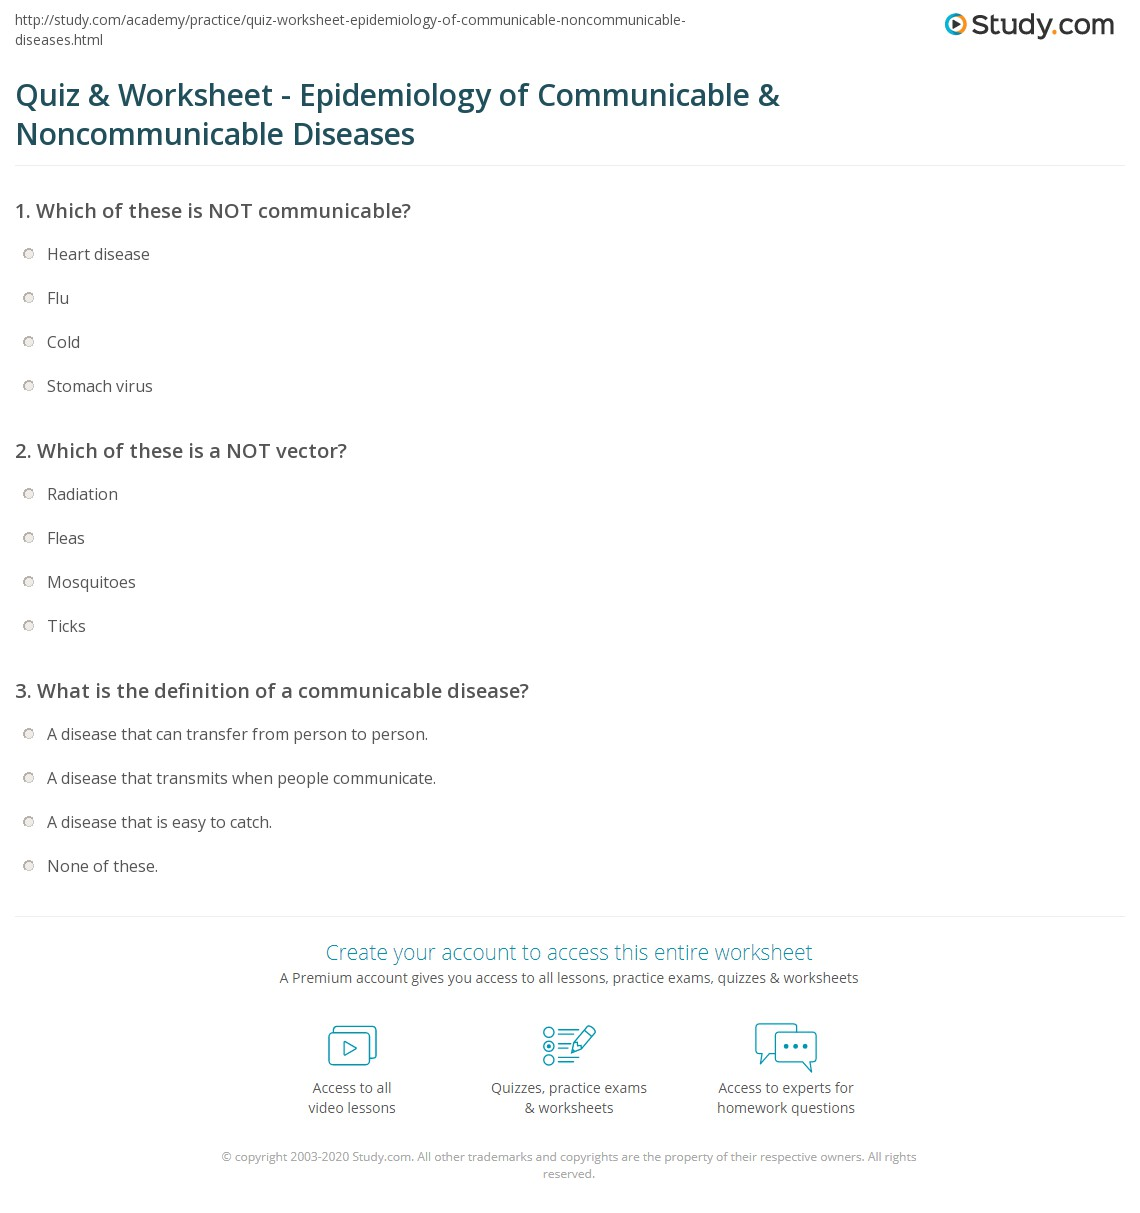 quiz worksheet epidemiology of communicable noncommunicable print epidemiology of communicable noncommunicable diseases worksheet